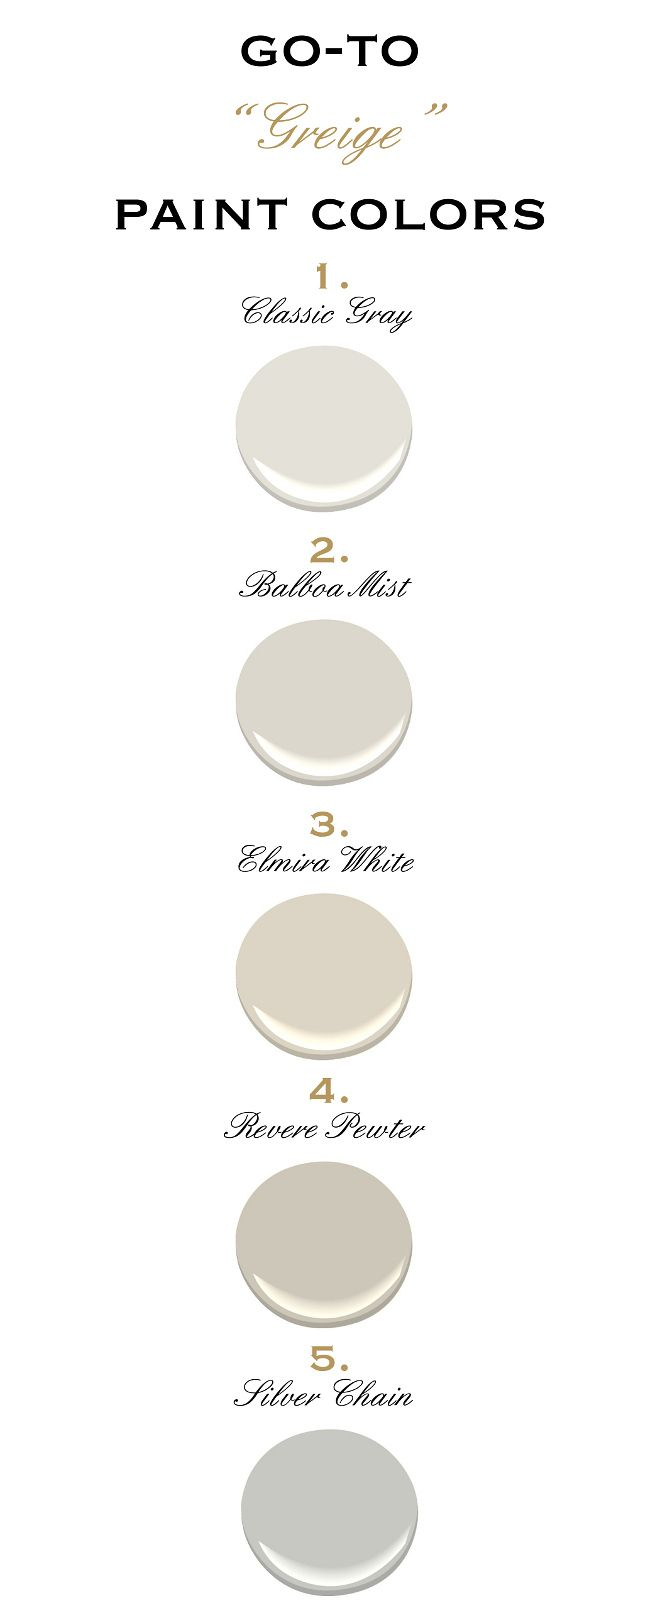 Top Greige Paint Colors By Benjamin Moore Classic Gray Balboa